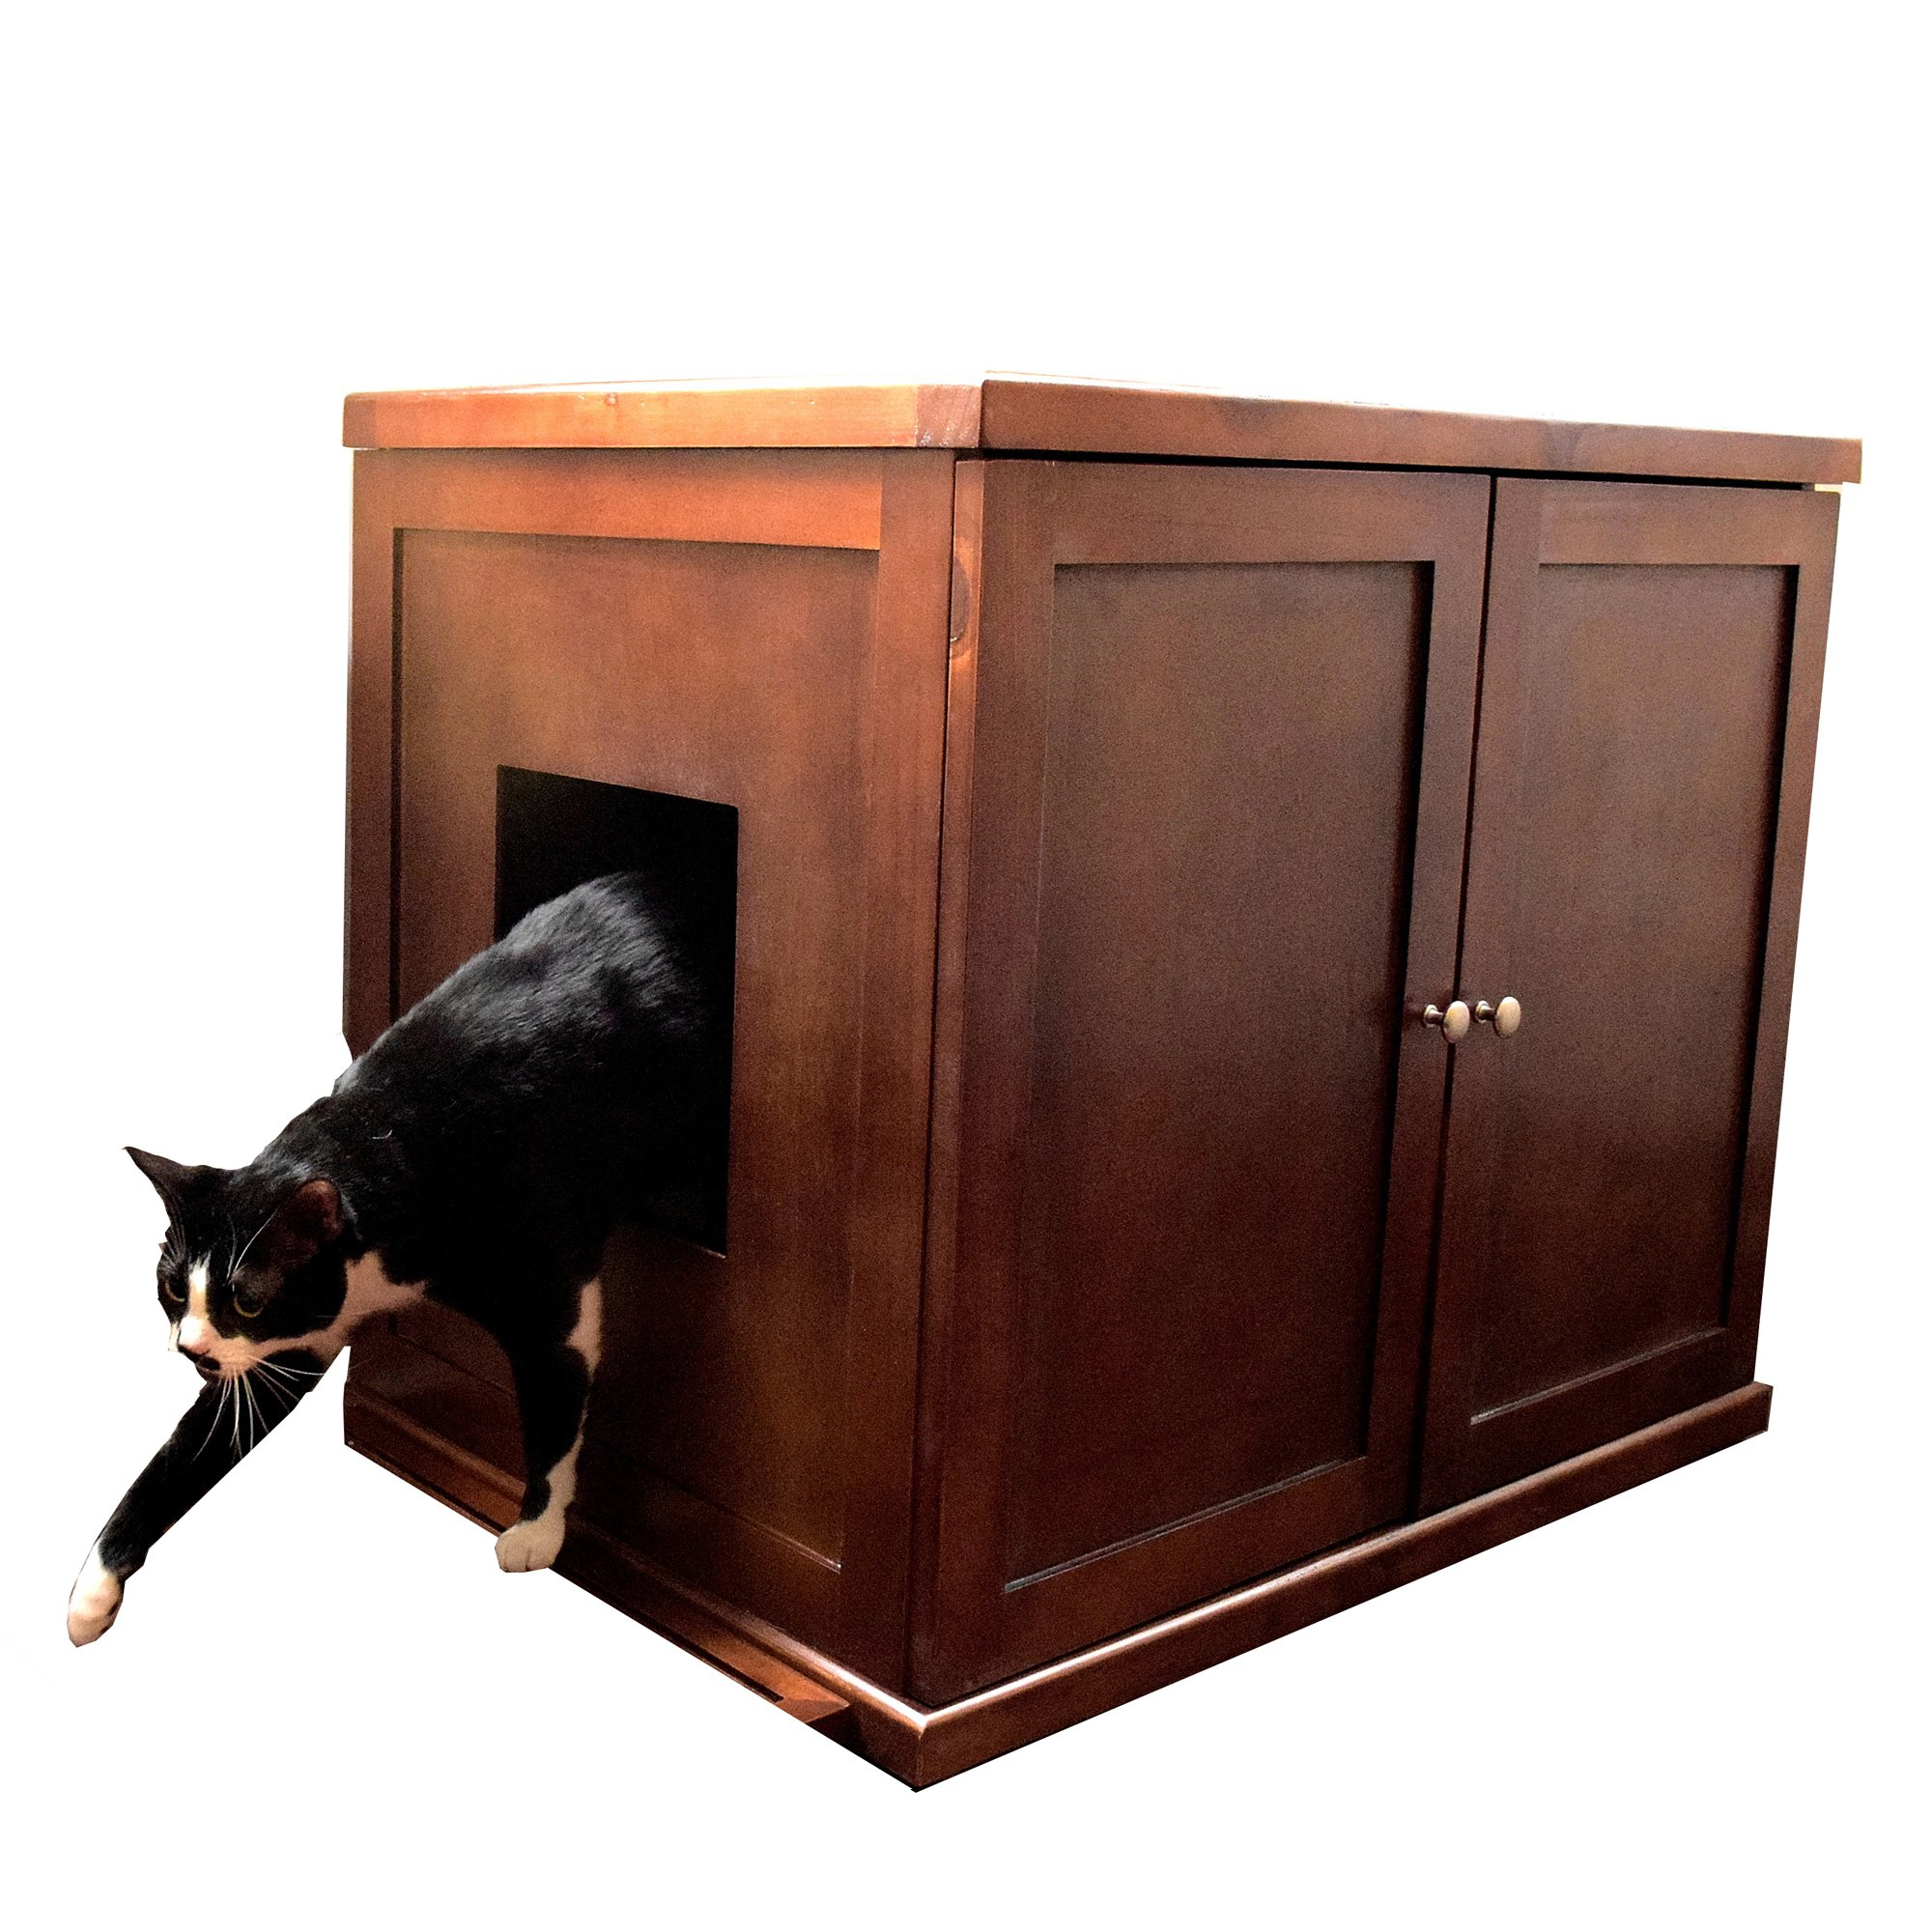 The Refined Feline Litter Box In Mahogany